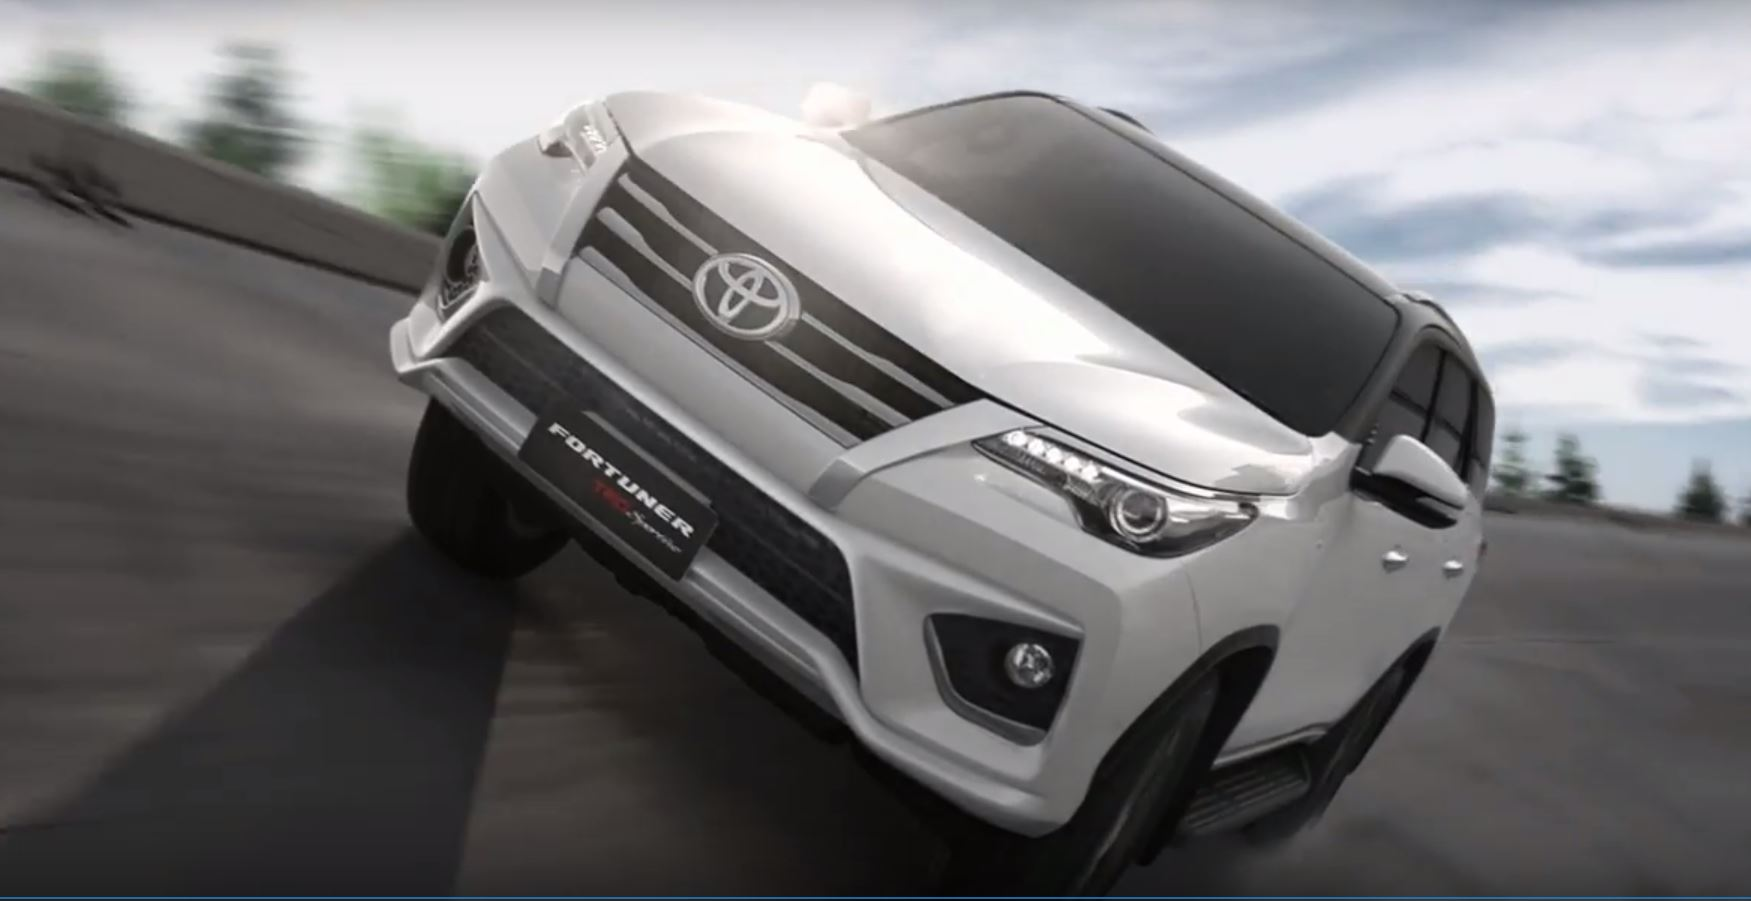 new toyota agya trd sportivo kompresi grand avanza 2016 fortuner is a hilux suv with